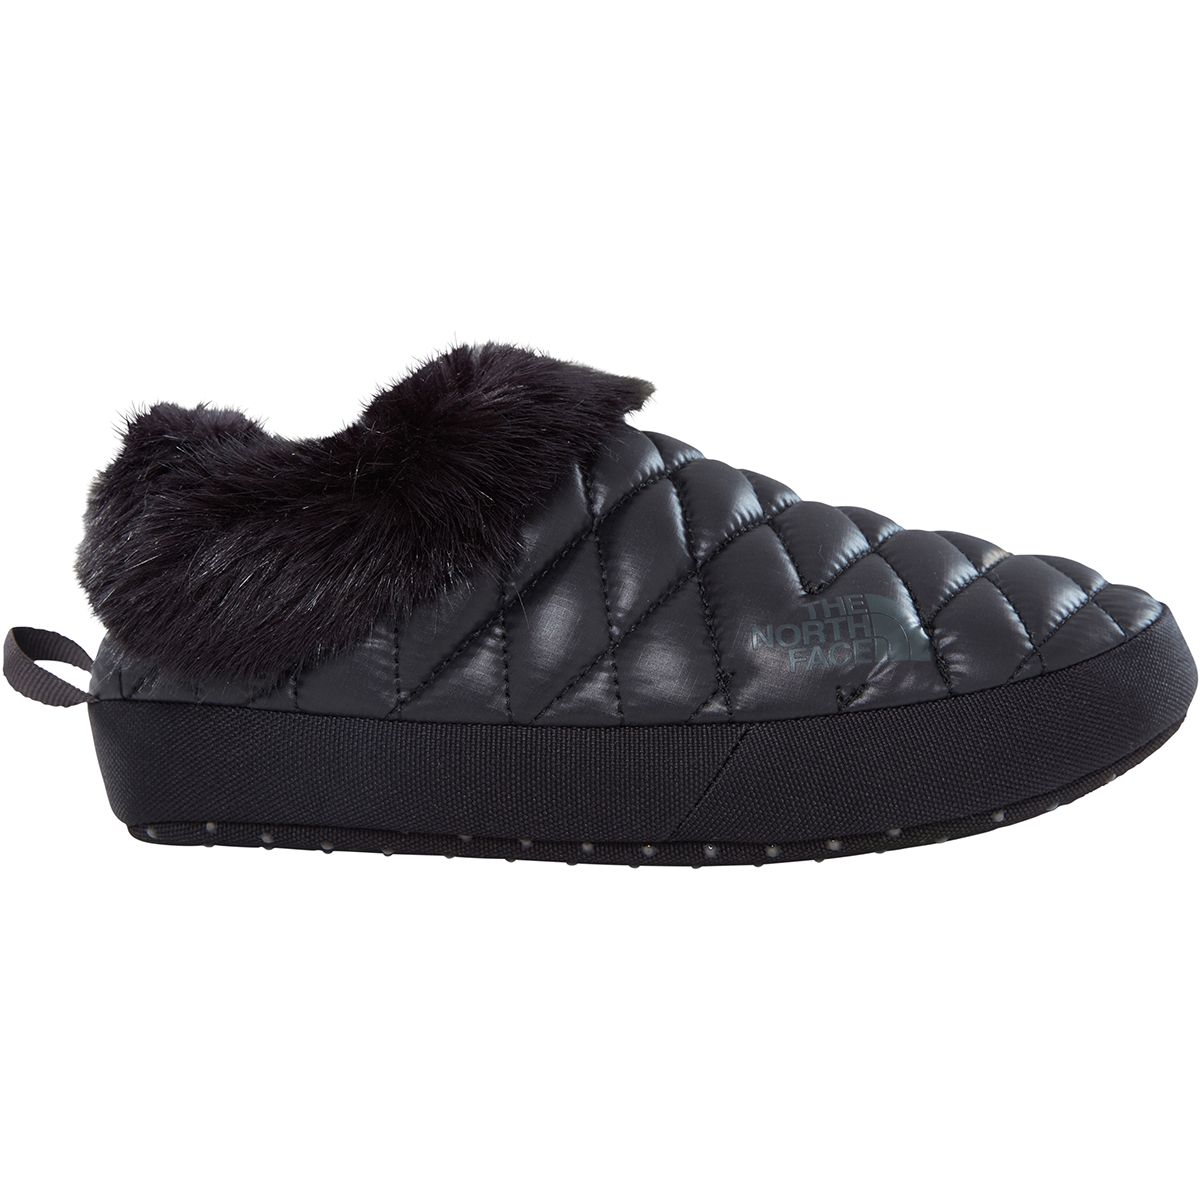 The North Face Damen Thermoball Tent Mule Faux Fur IV Hausschuhe Schwarz 37, 38, 37.5, 38.5